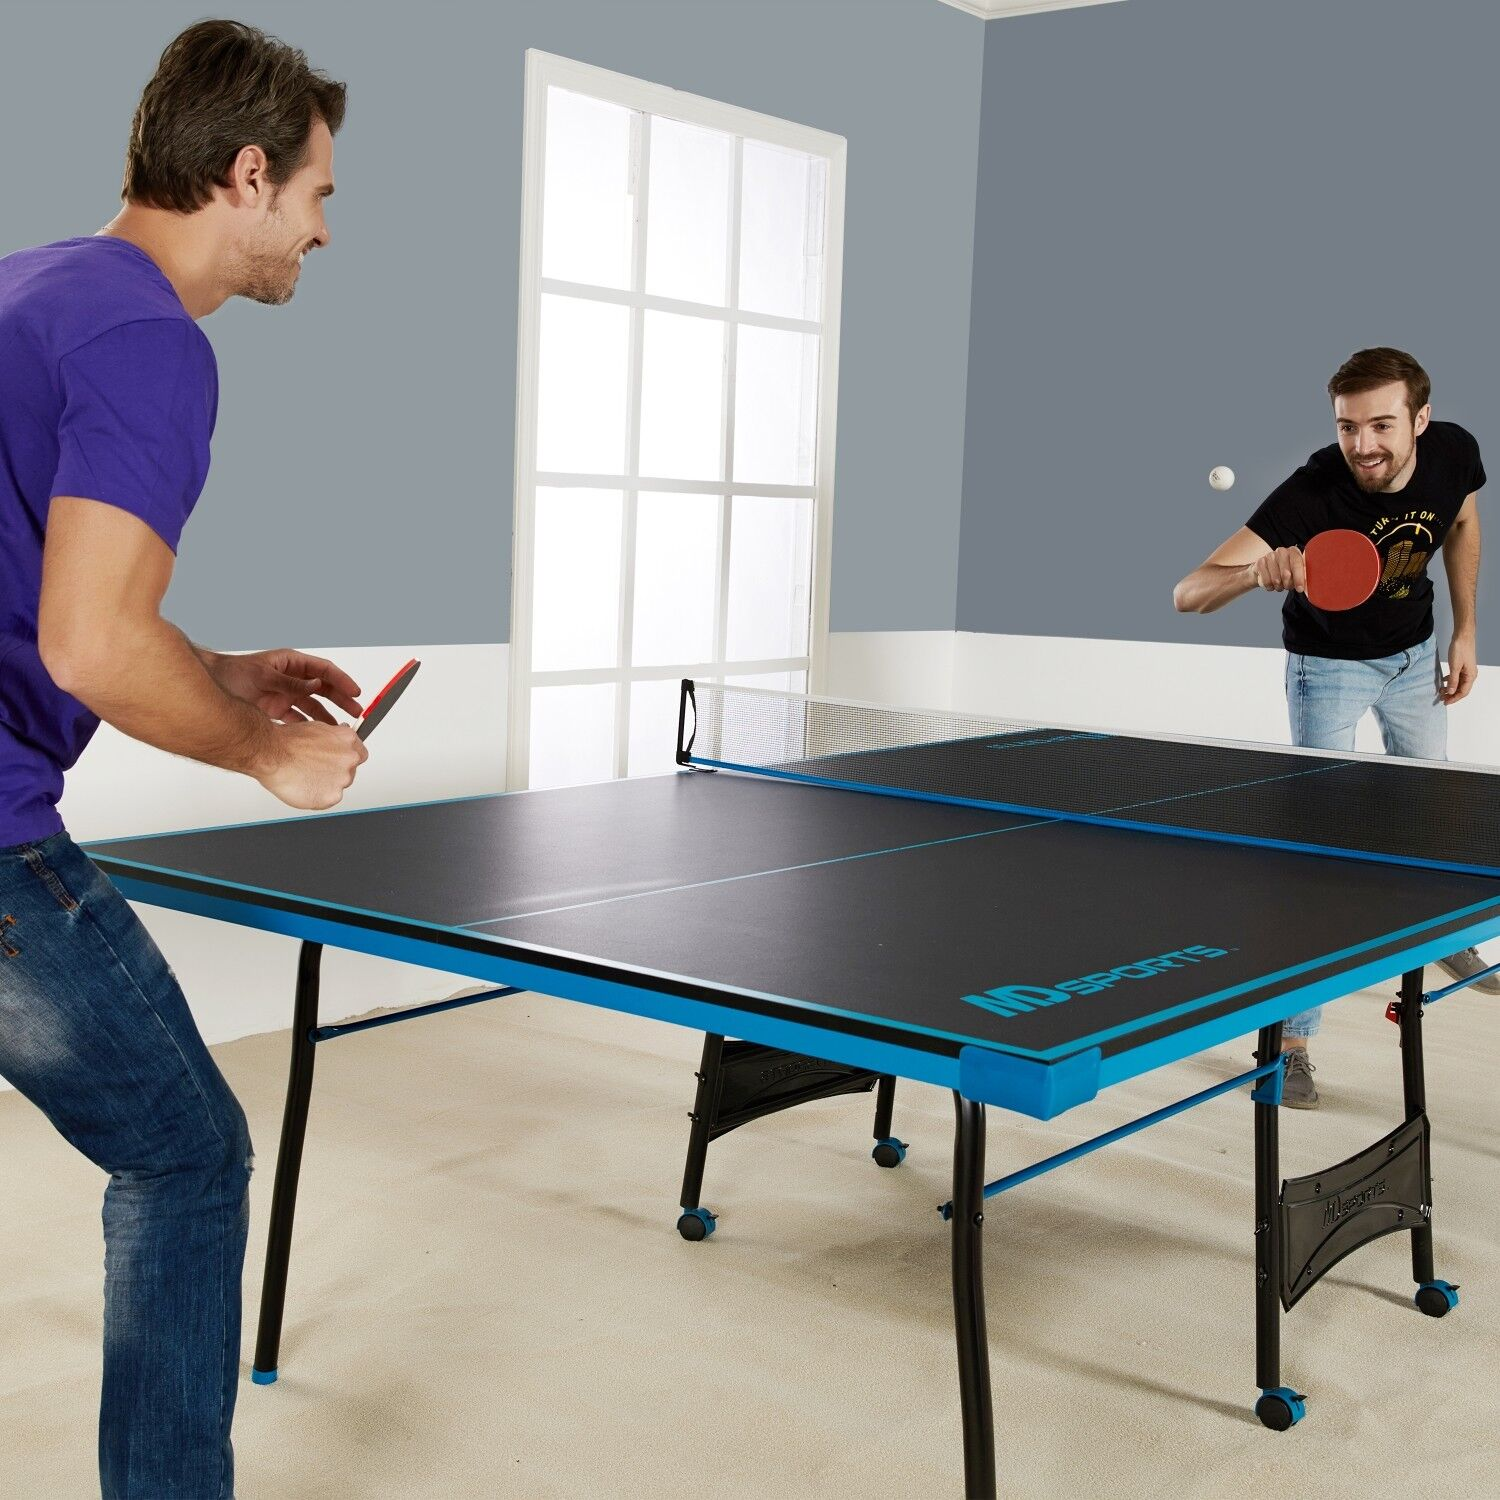 ping pong table tennis black blue official size sports. Black Bedroom Furniture Sets. Home Design Ideas